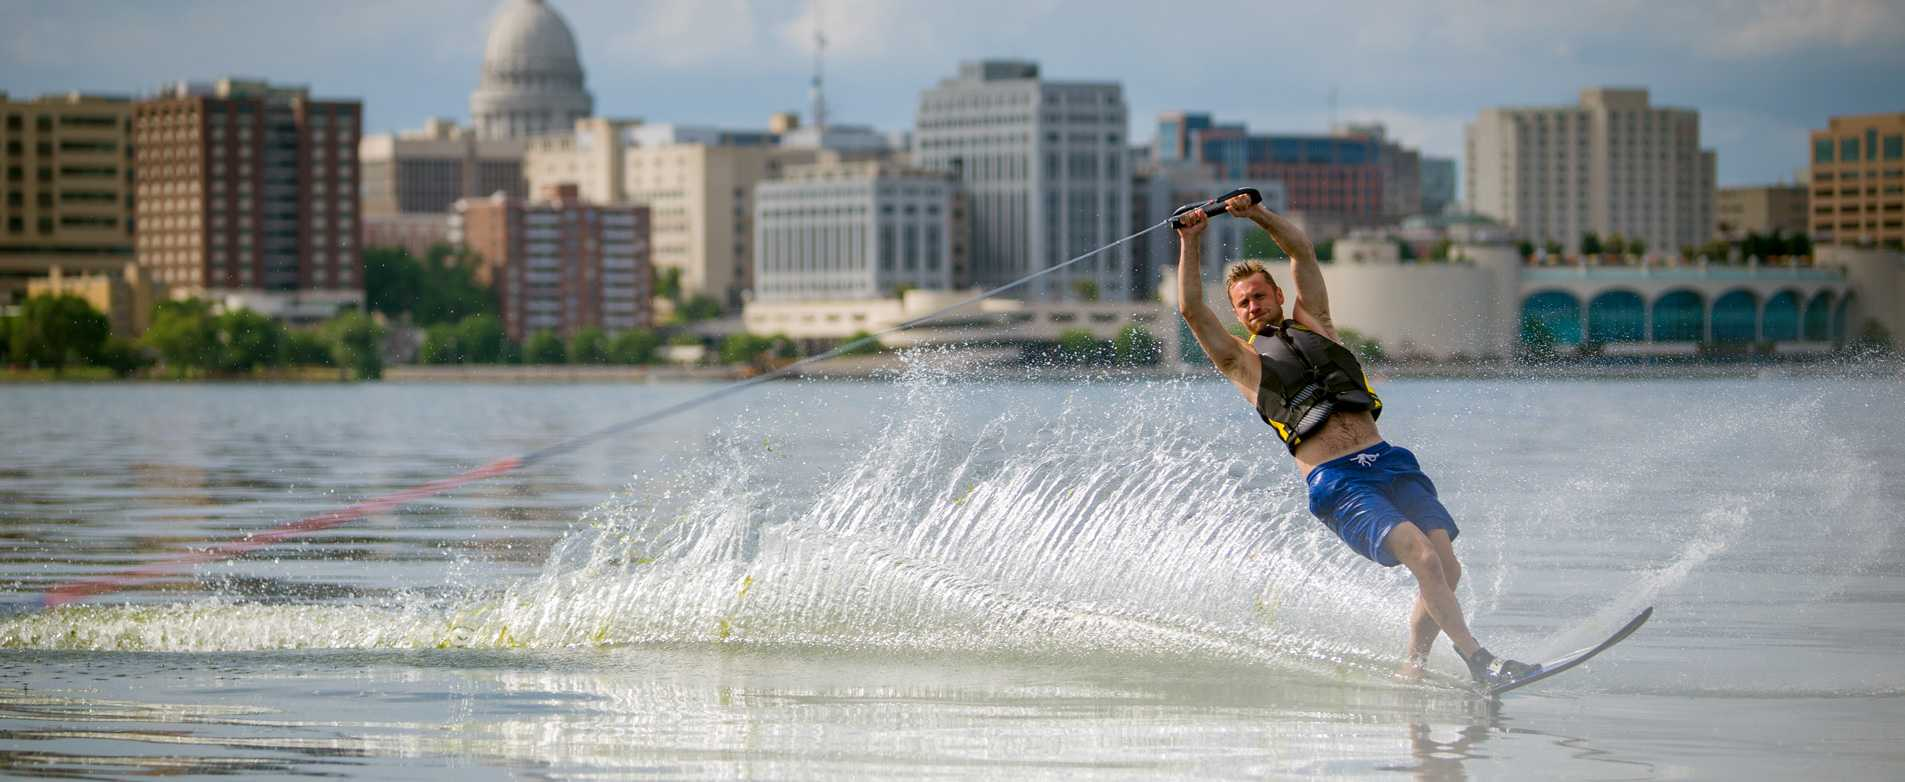 Man Water Skiing on Lake Monona